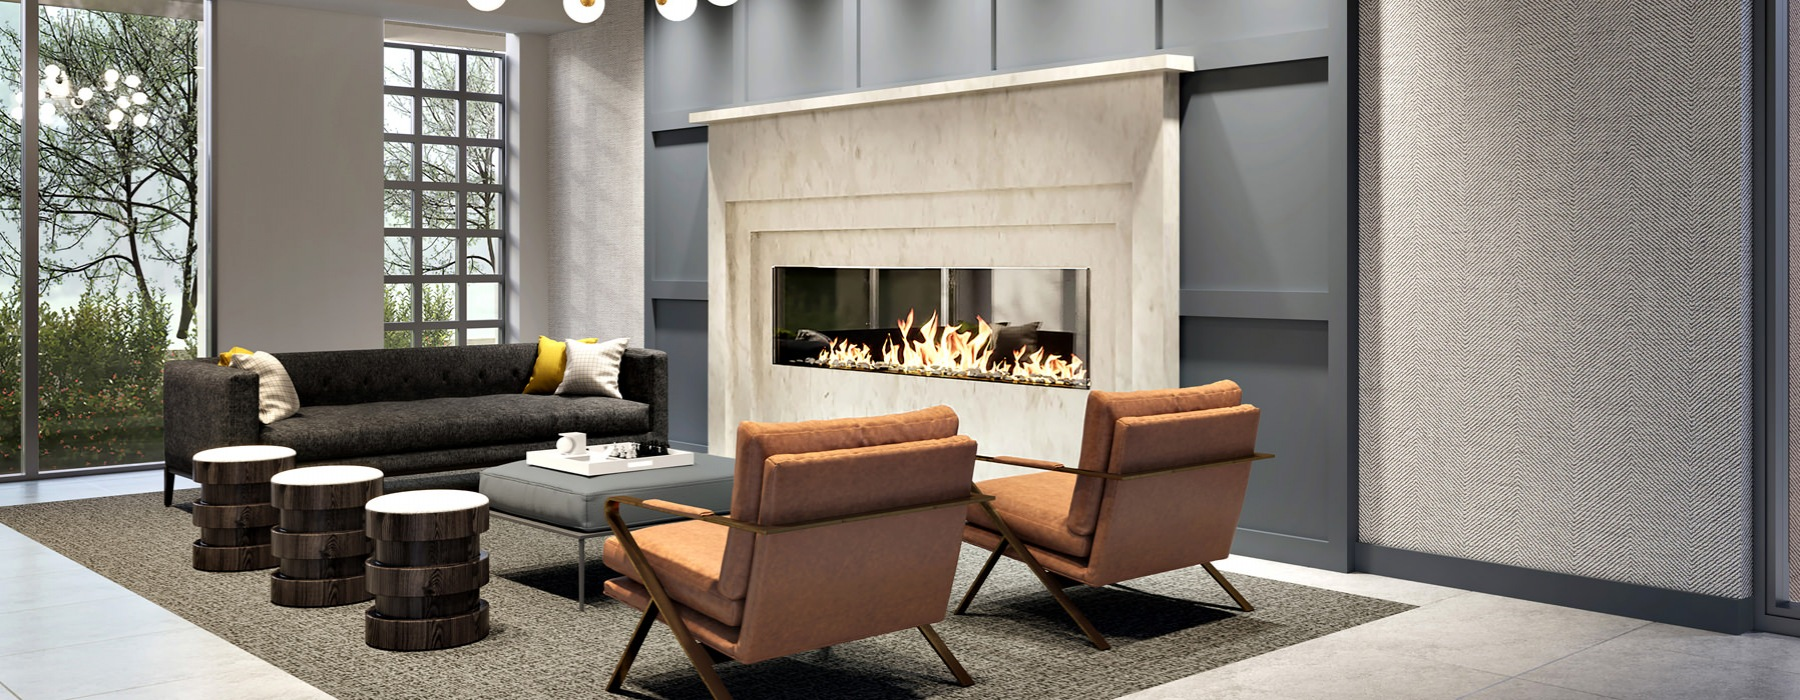 Lobby Area with Fire Place